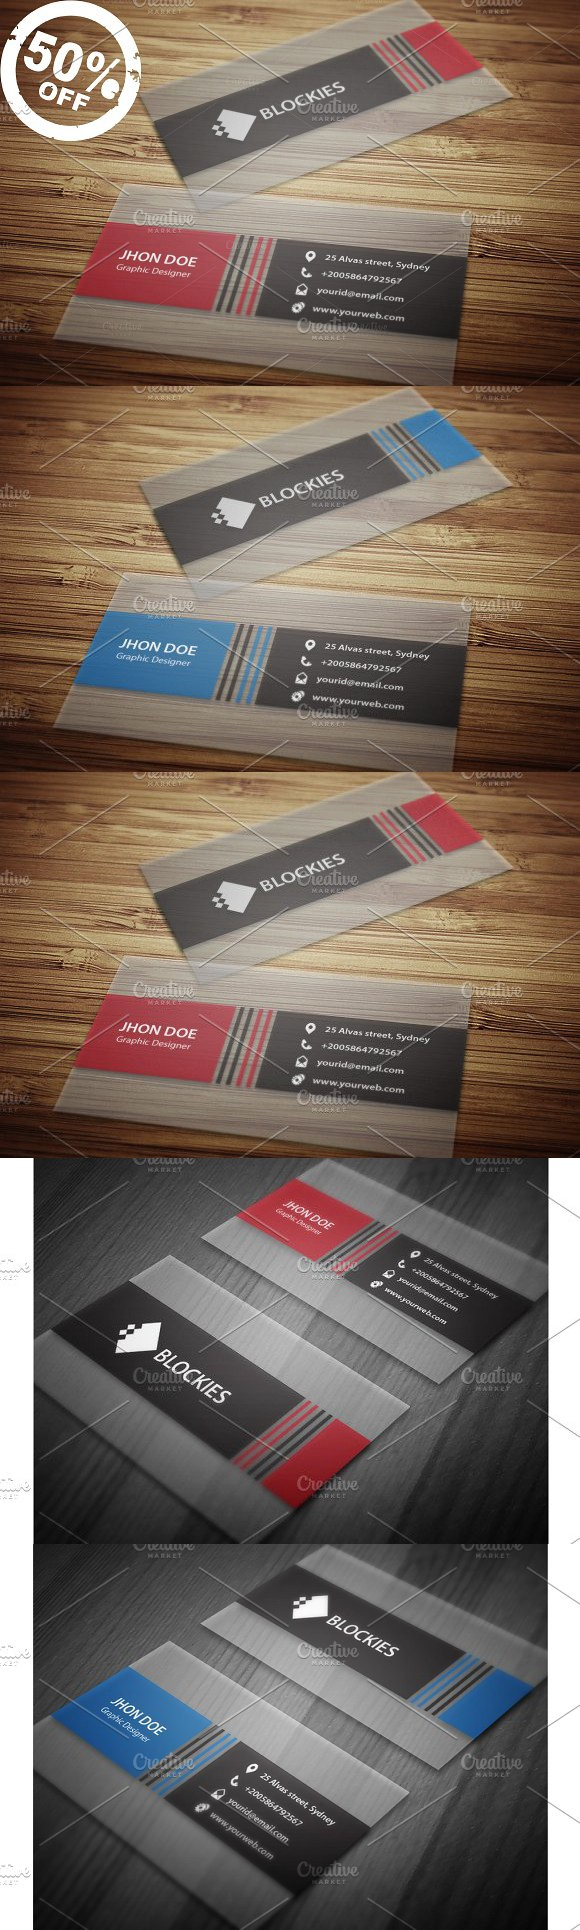 Semi transparent business card pinterest transparent business semi transparent business card creative business card templates reheart Image collections